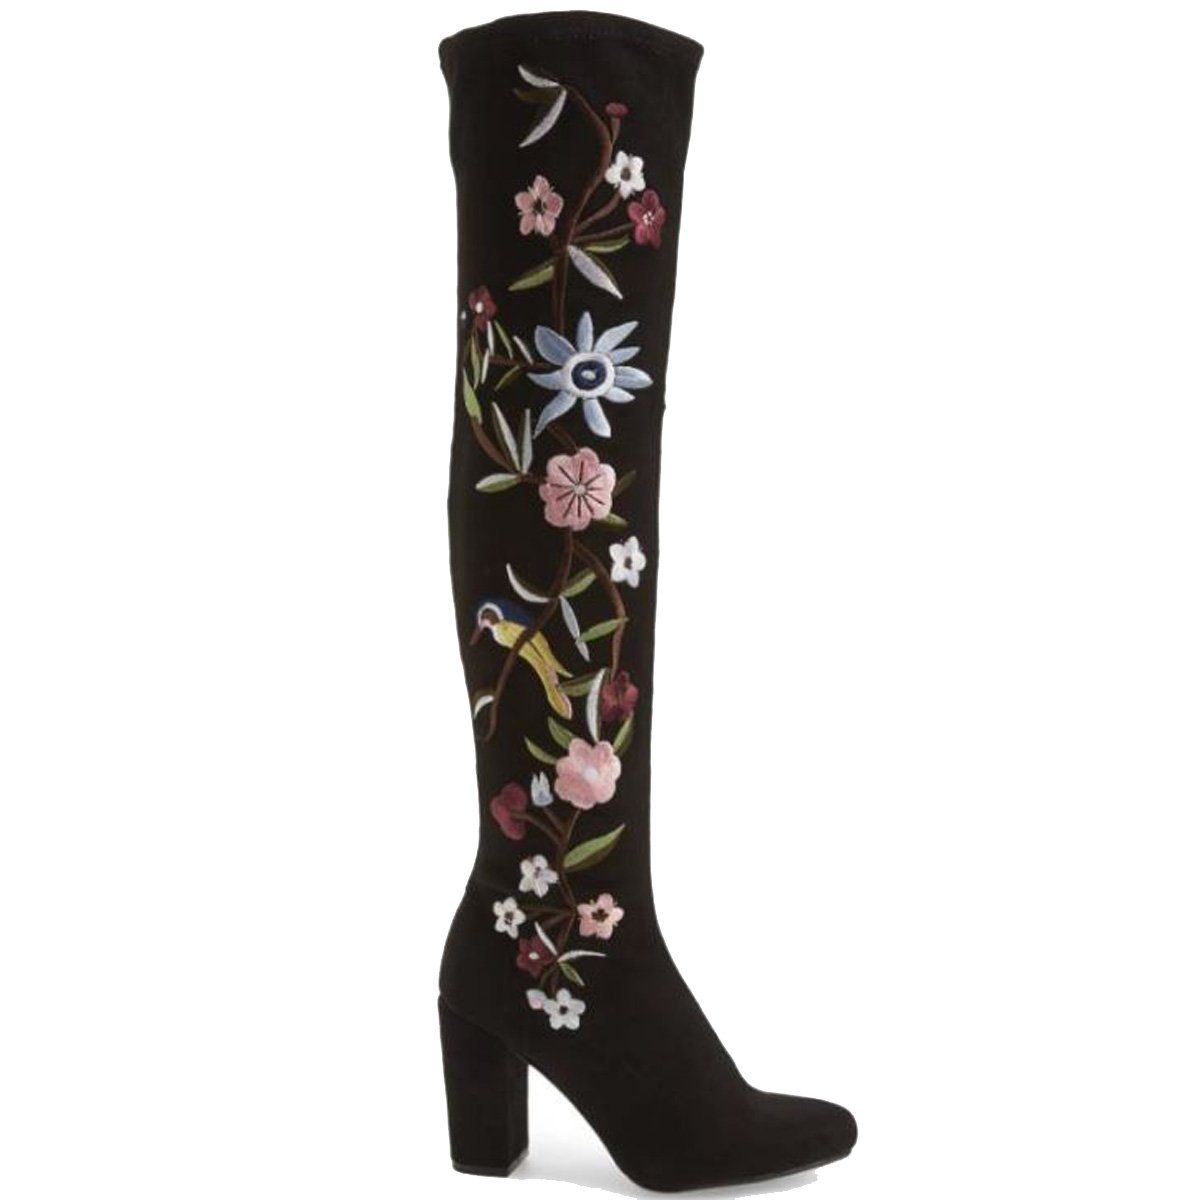 f8dd0c2d746 MIA Serena - Black Stretch Microsuede Floral Embroidered Over-The ...